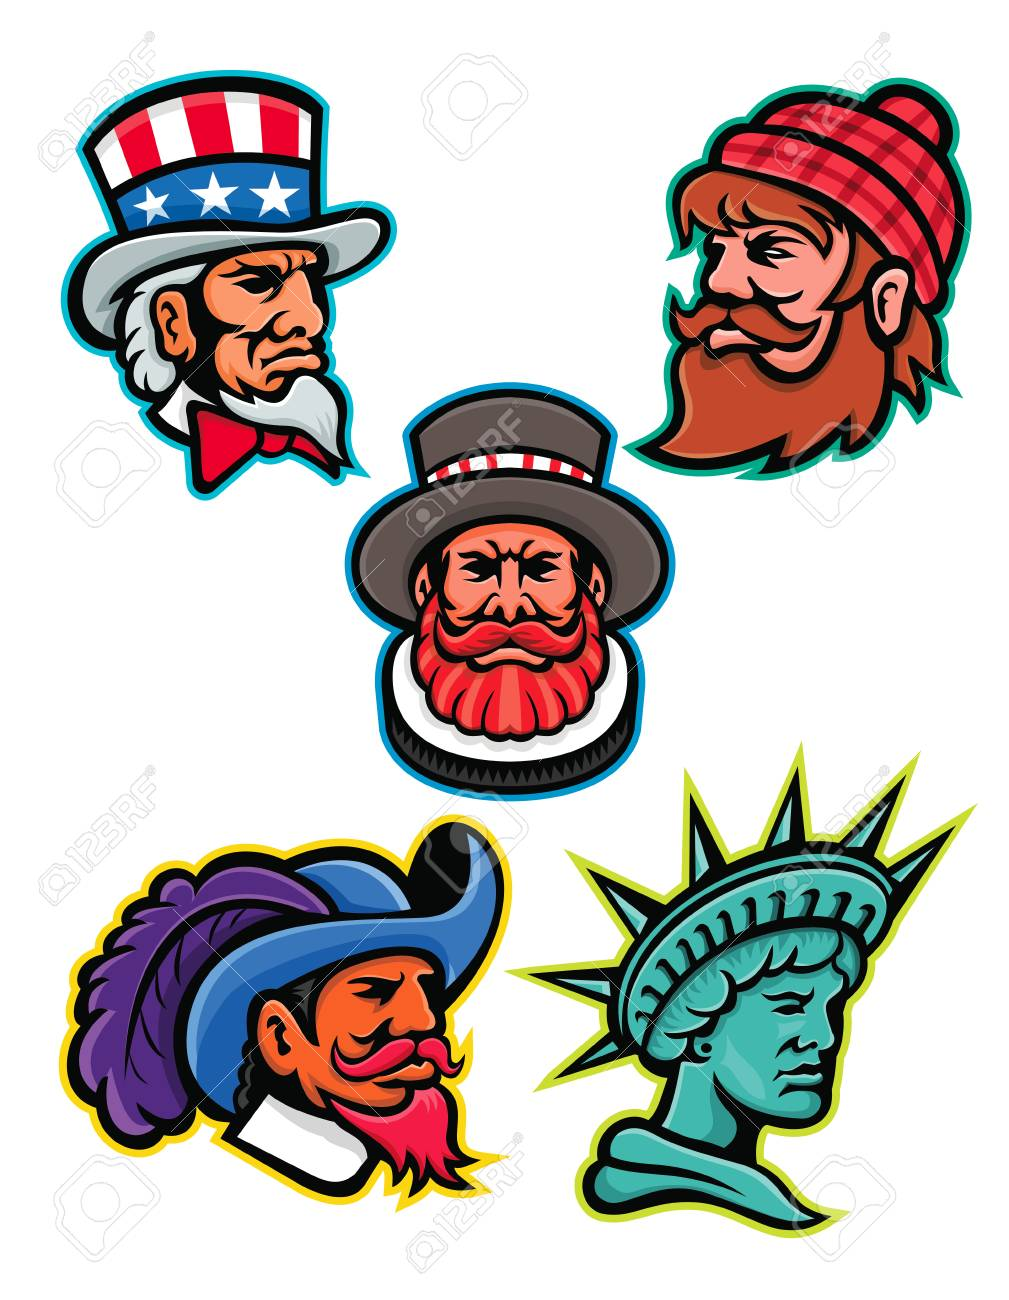 hight resolution of mascot icon illustration set of heads of american and british mascots such as uncle sam paul bunyan lumberjack beefeater or yeoman cavalier or musketeer